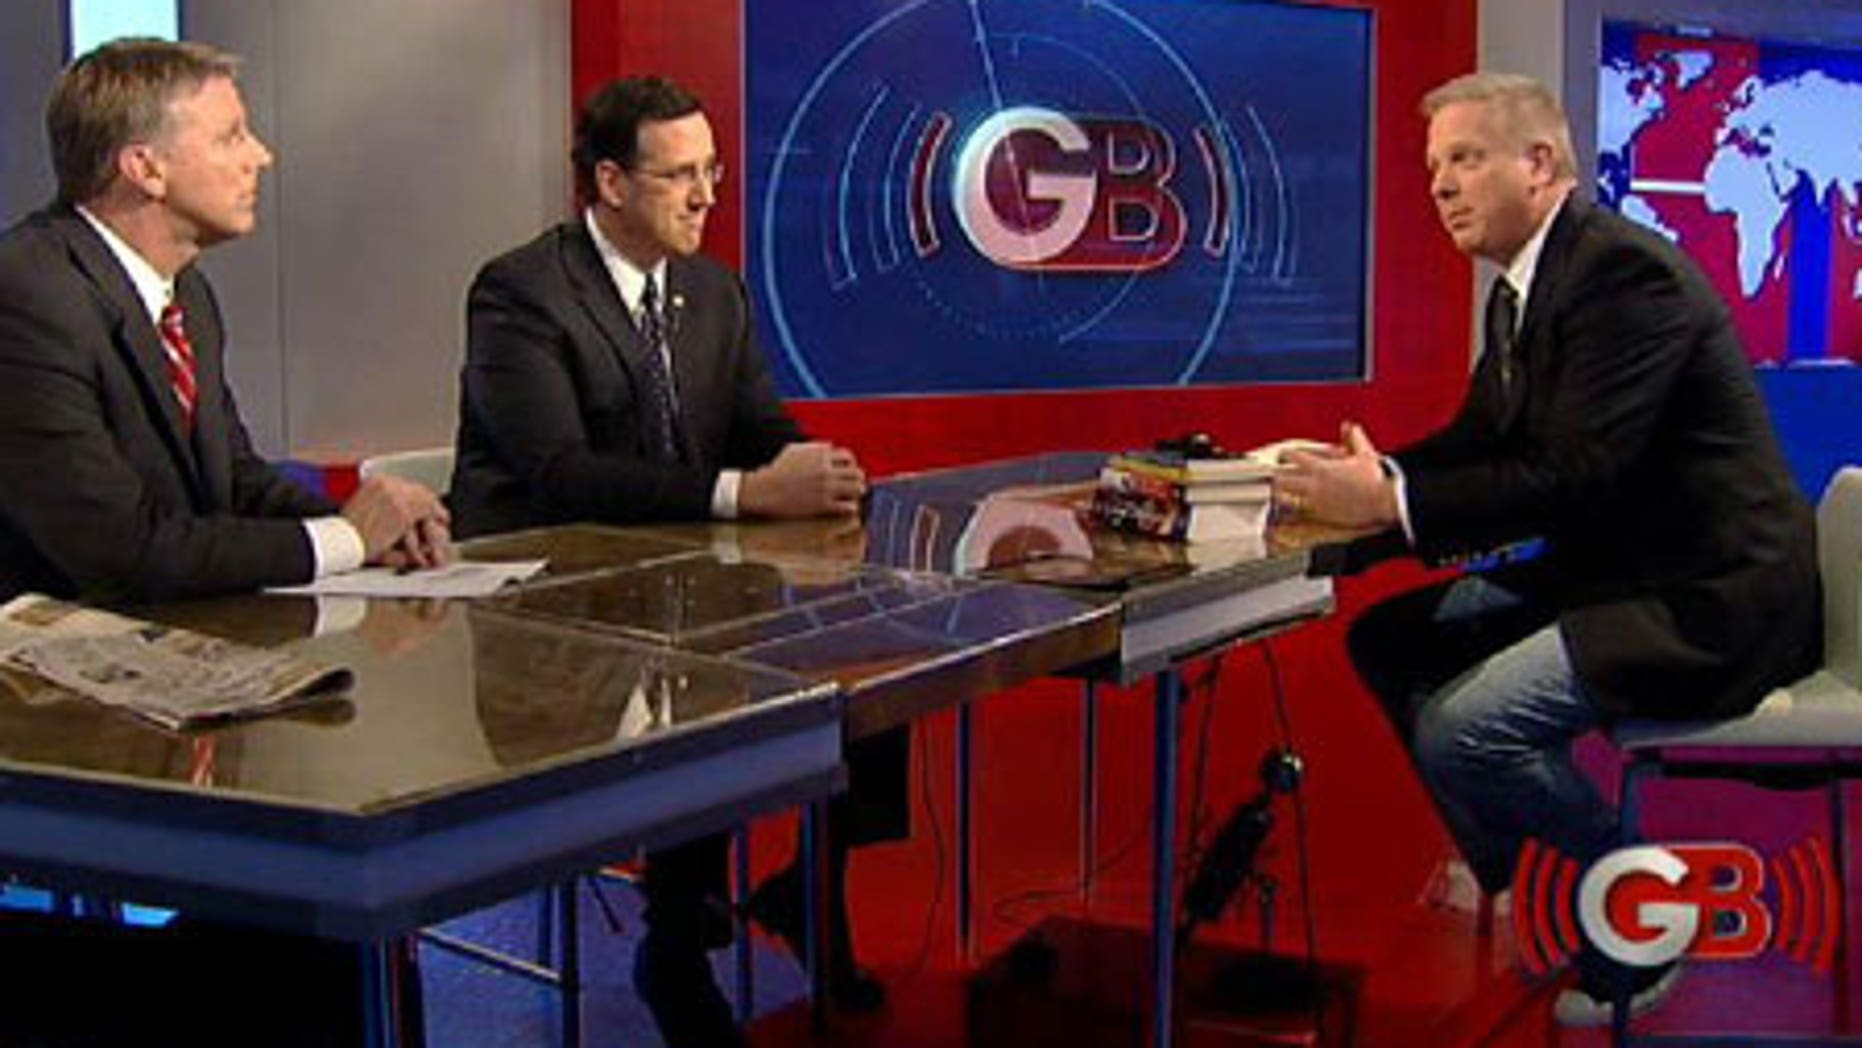 From left: Tim Cahill and Rick Santorum with Bret Baier